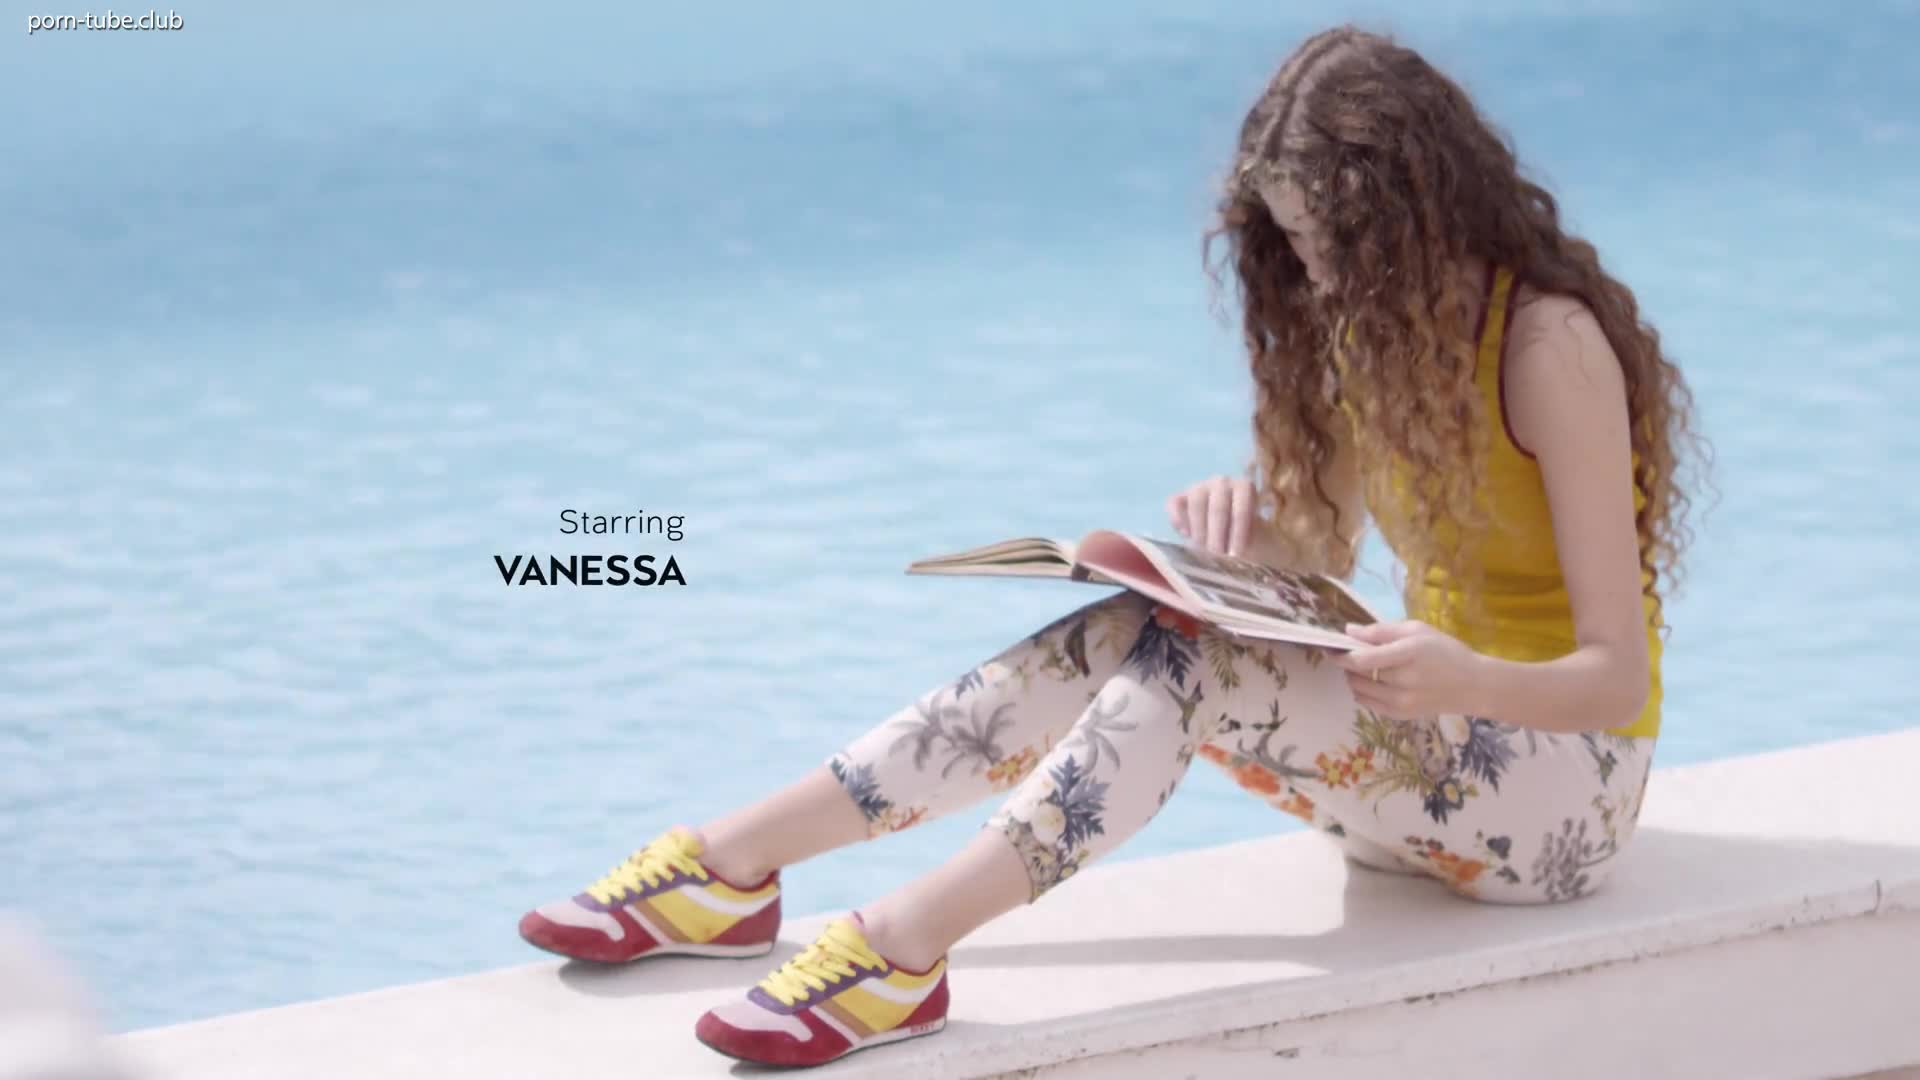 WowGirls - Vanessa Drop Your Load Here